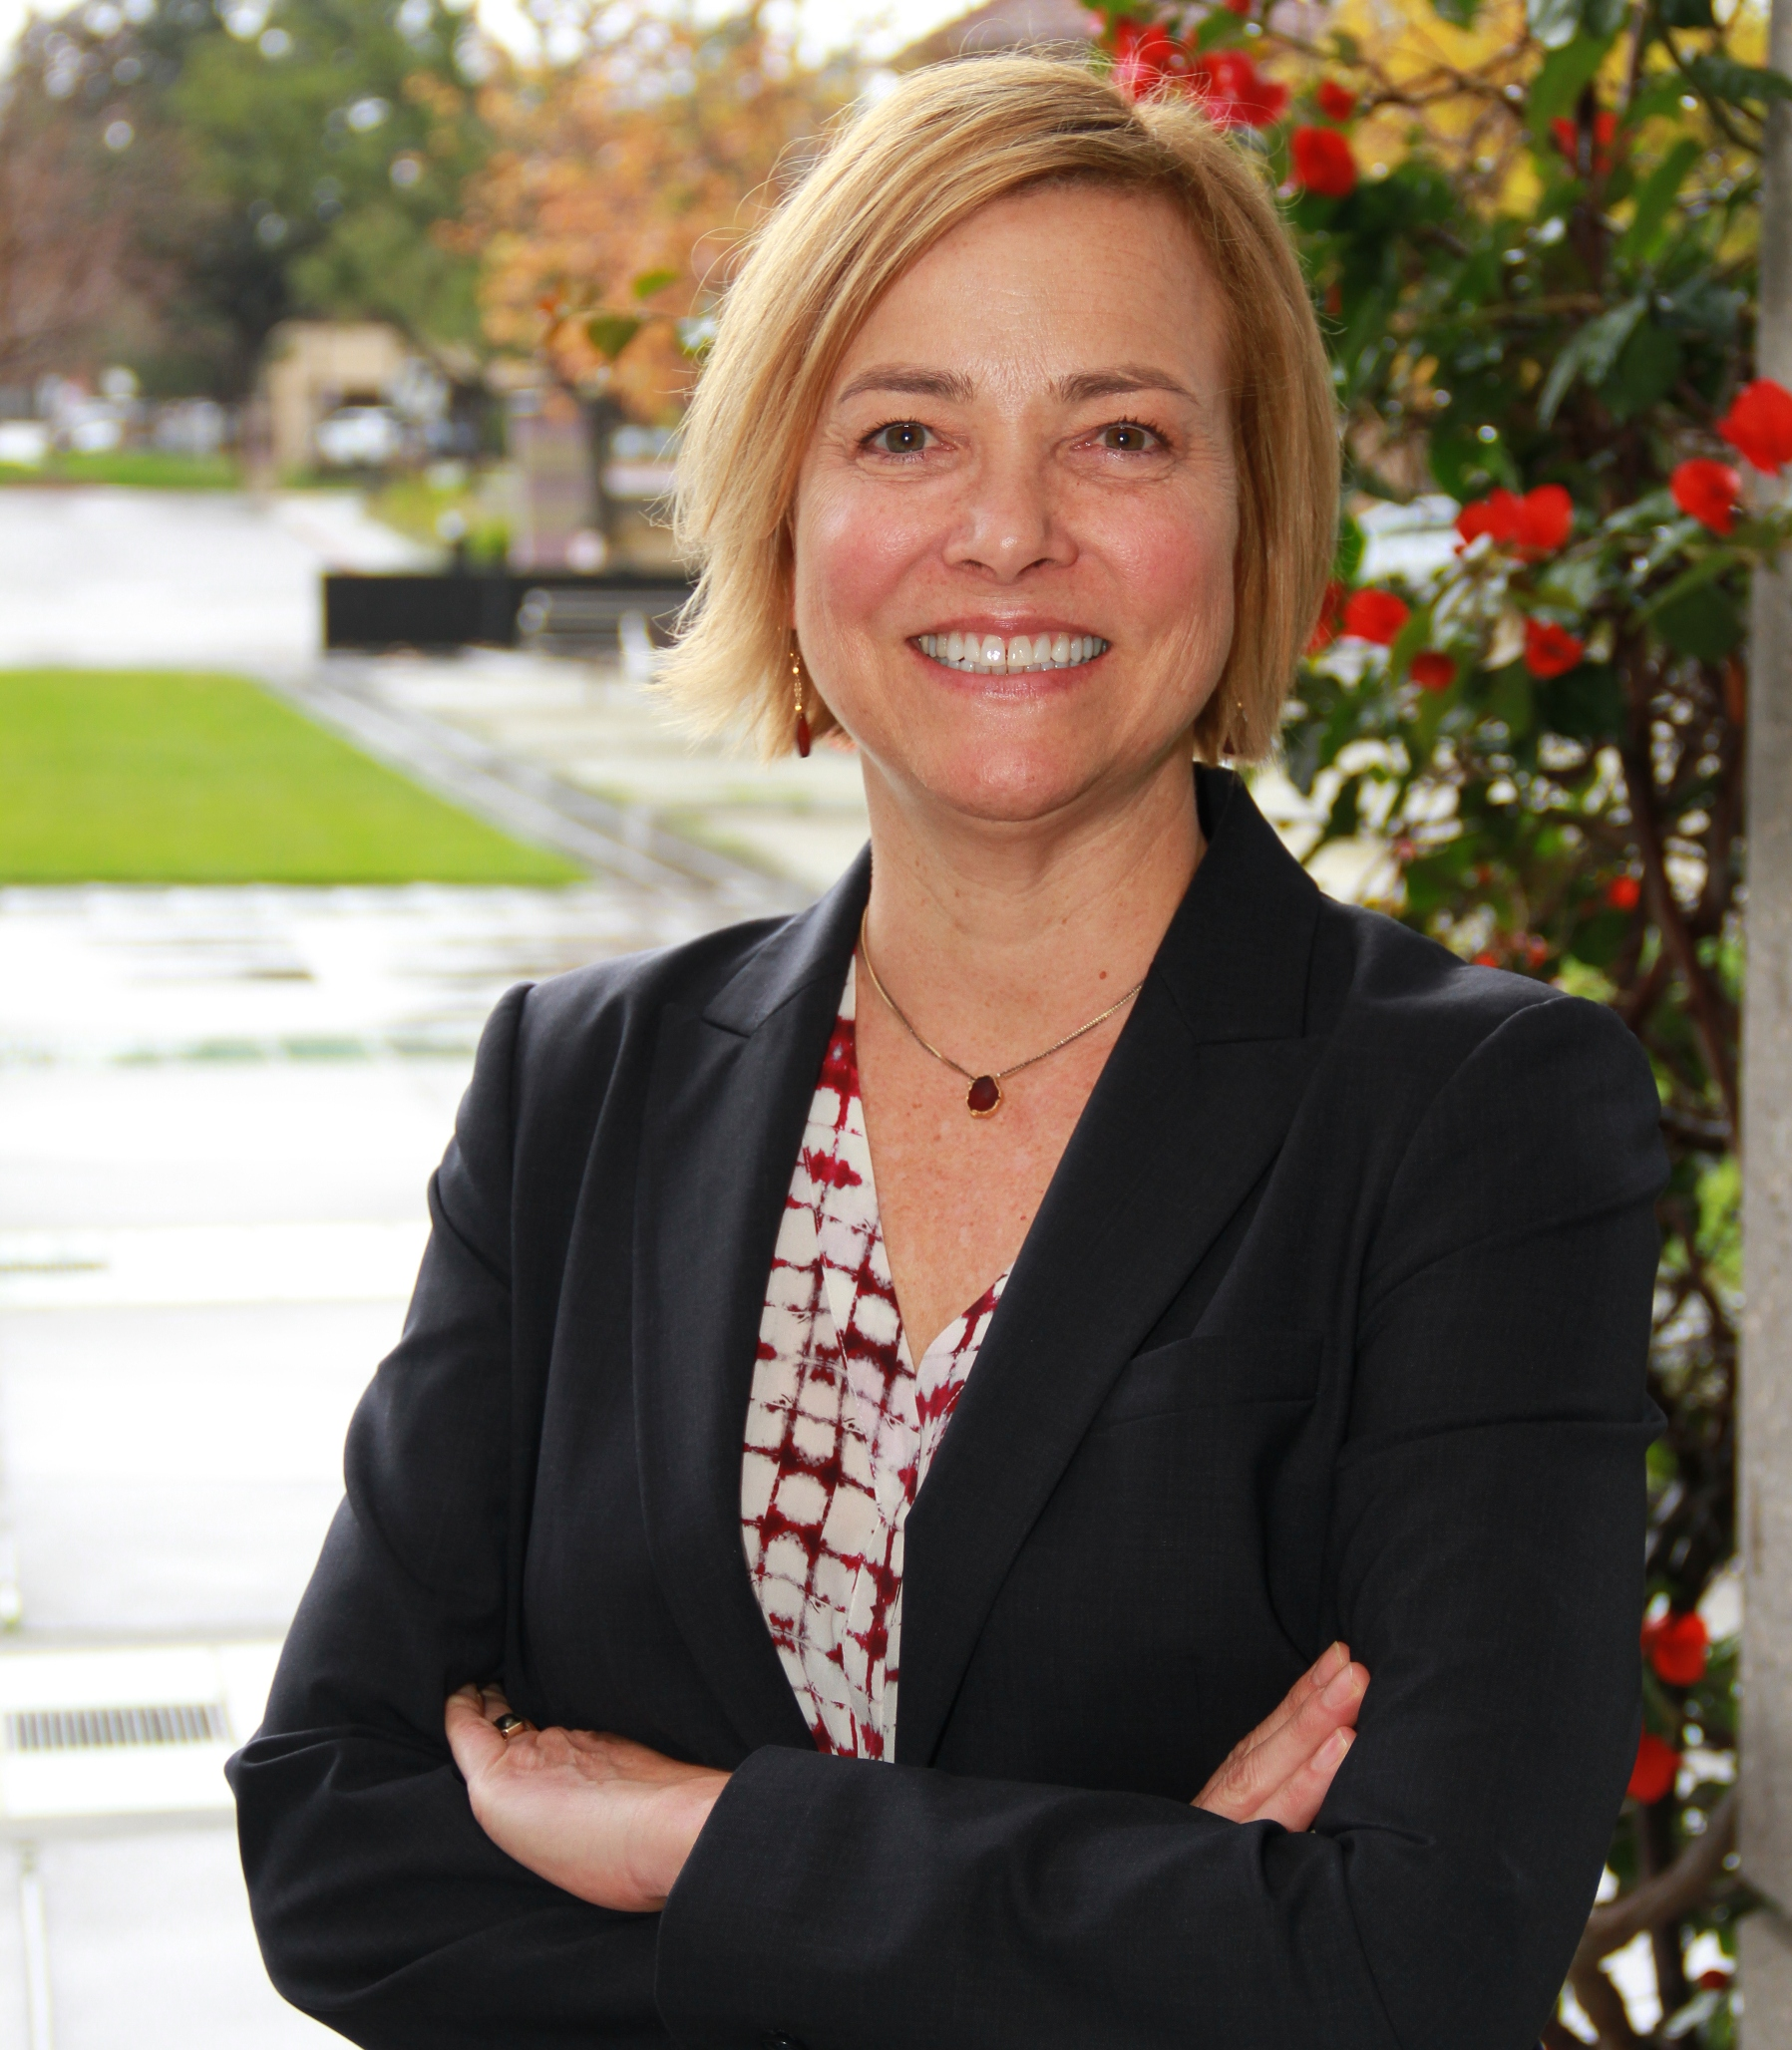 City manager government card - Assistant City Manager Audrey Seymour Ramberg Has 20 Years Of Local Government Experience On The Peninsula Before Coming To Mountain View She Served As